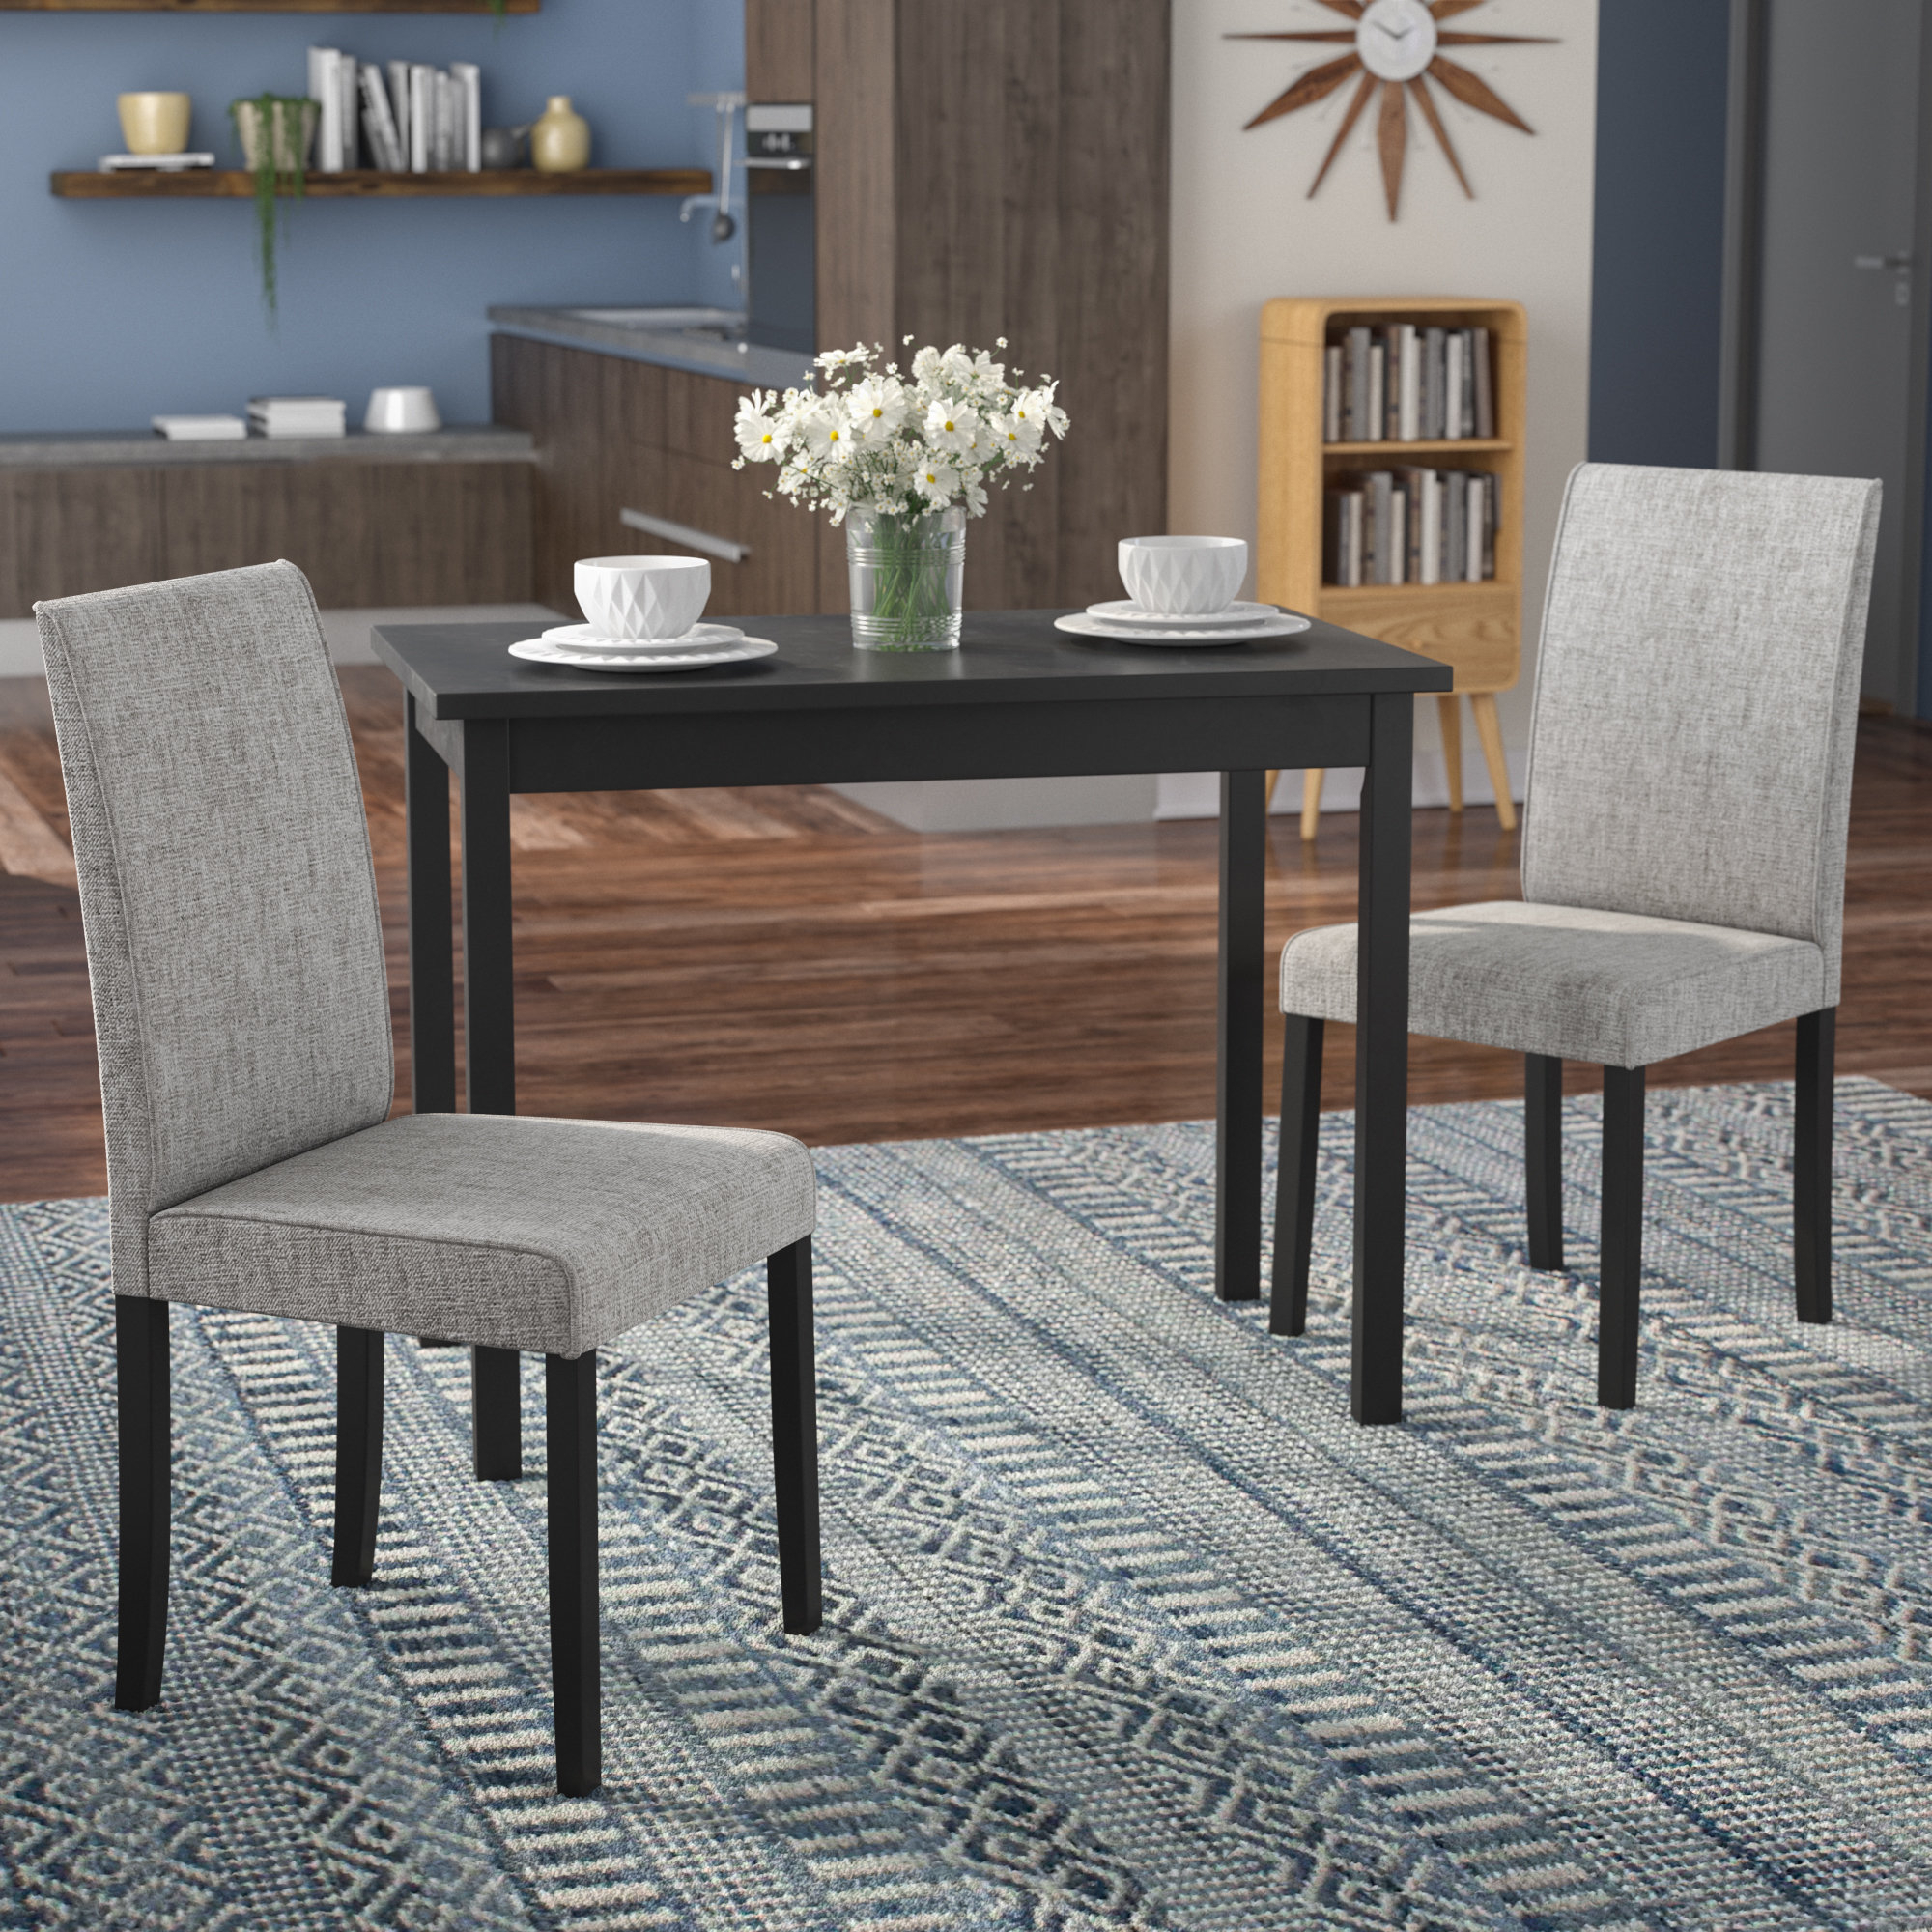 2018 Darvell 3 Piece Dining Set Inside Baillie 3 Piece Dining Sets (Gallery 2 of 20)